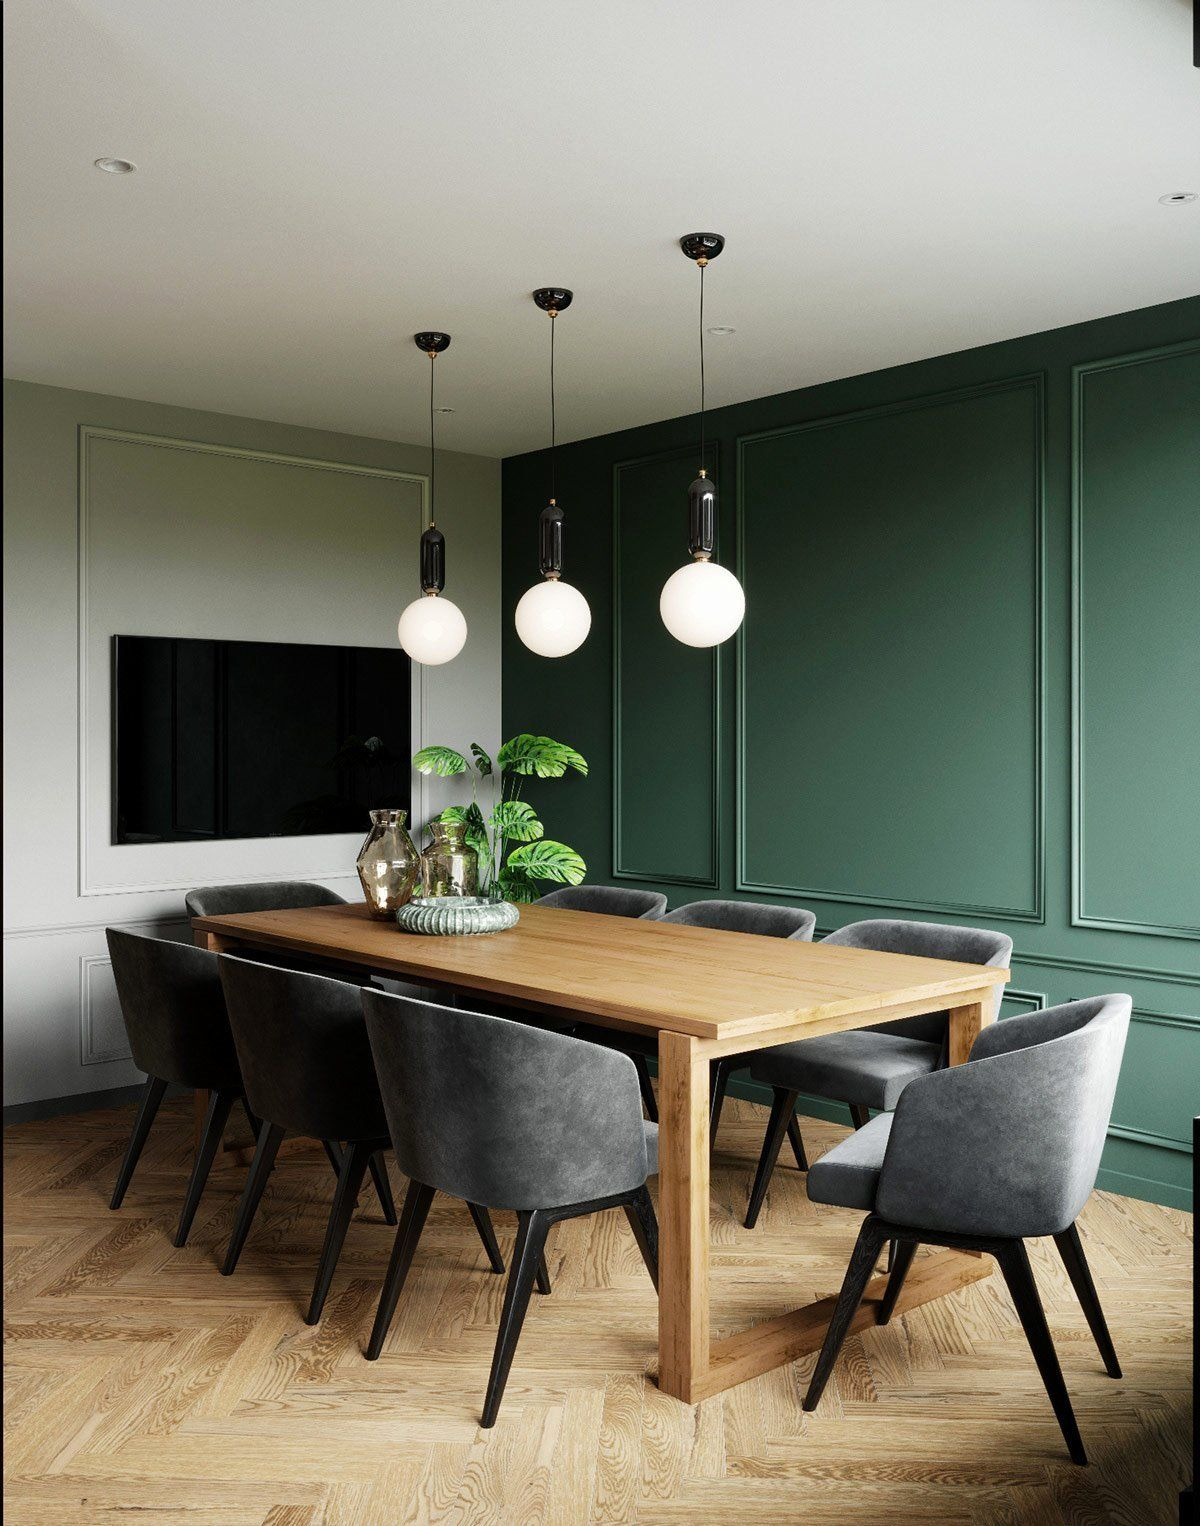 Emerald Accent Wall : emerald, accent, Dining, Accent, Emerald, Green, Classic, Boiserie, Room,, Traditional, Rooms,, Accents